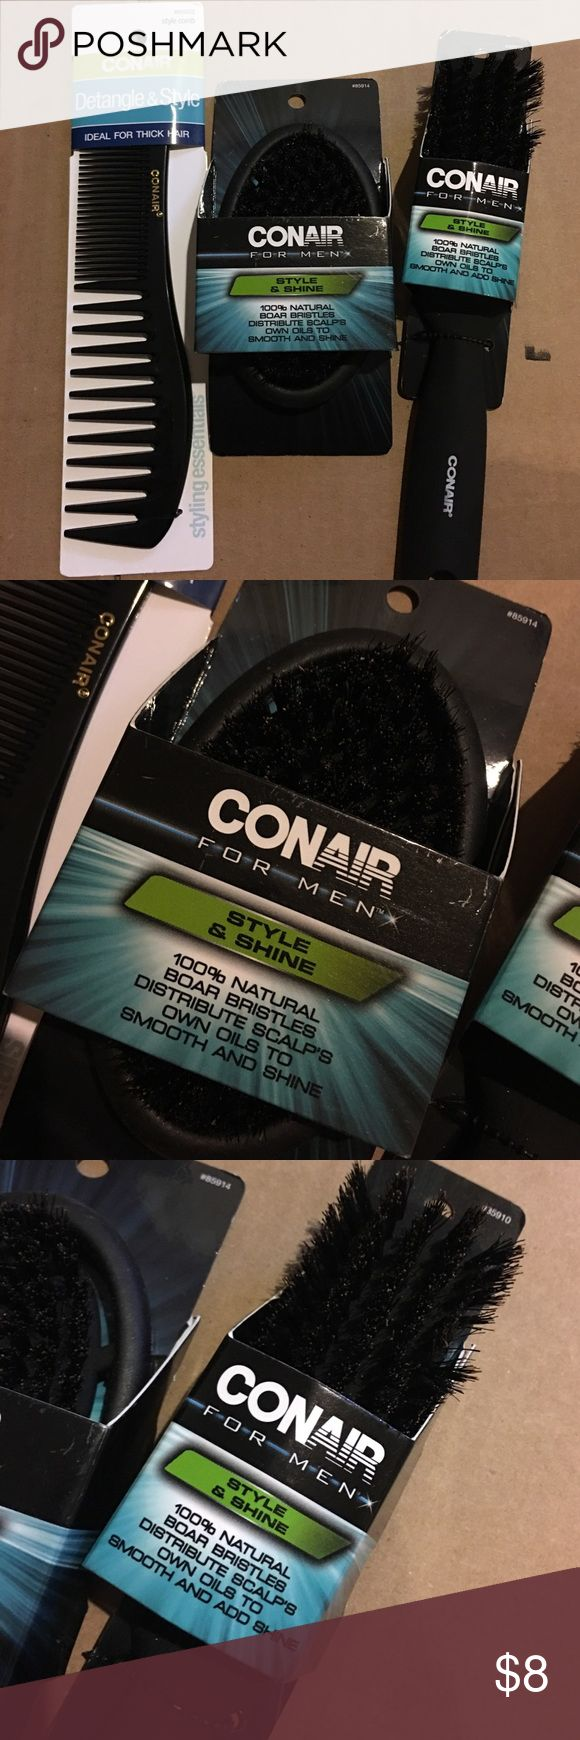 Conair men's hair brush bundle Thick hair comb, 2 100% natural boar bristles brushes.. all brand new never used.. retail 16$.. Accessories Hair Accessories